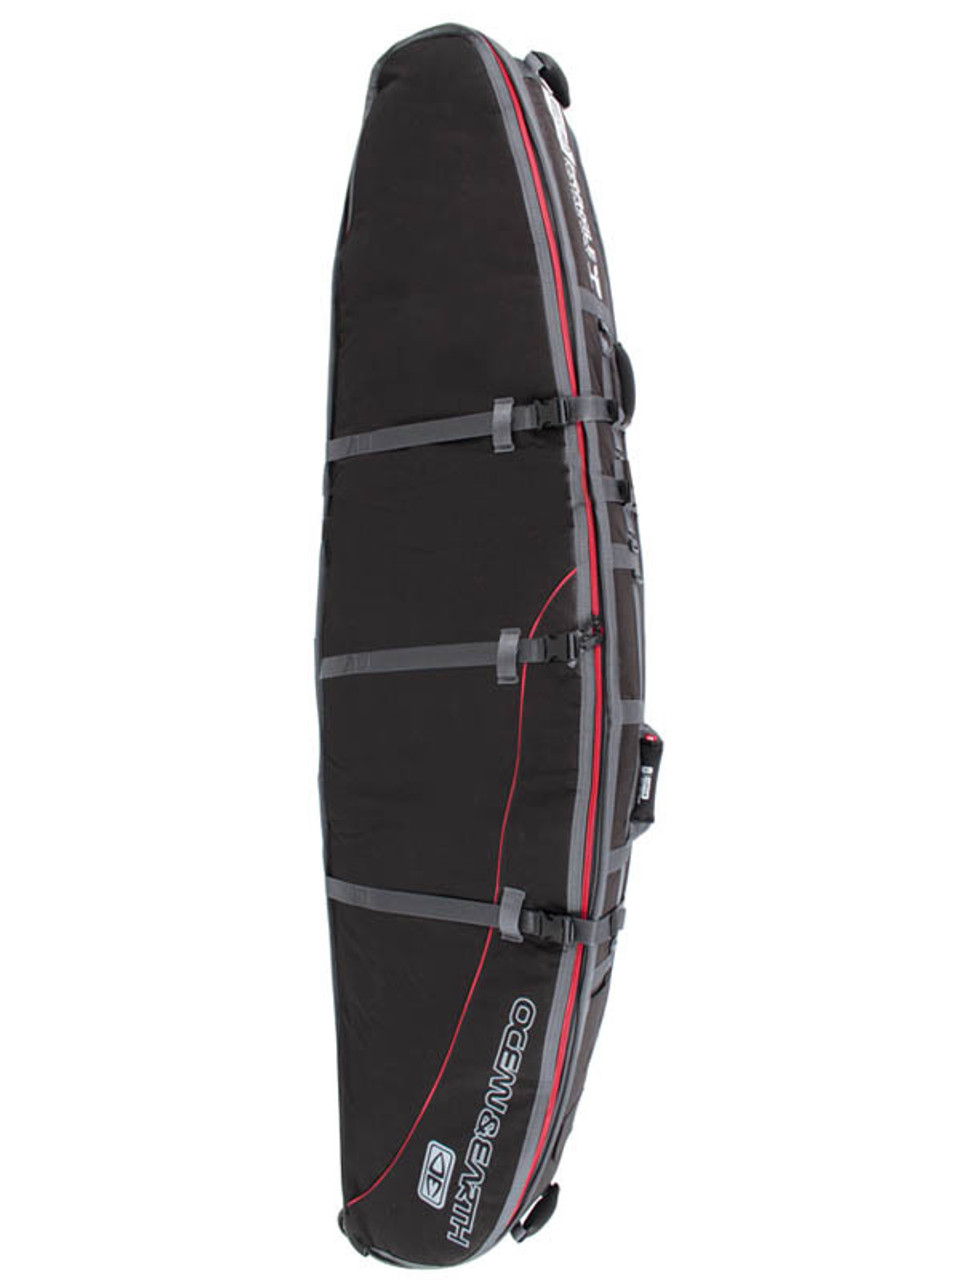 longboard surfboard travel bag with wheels